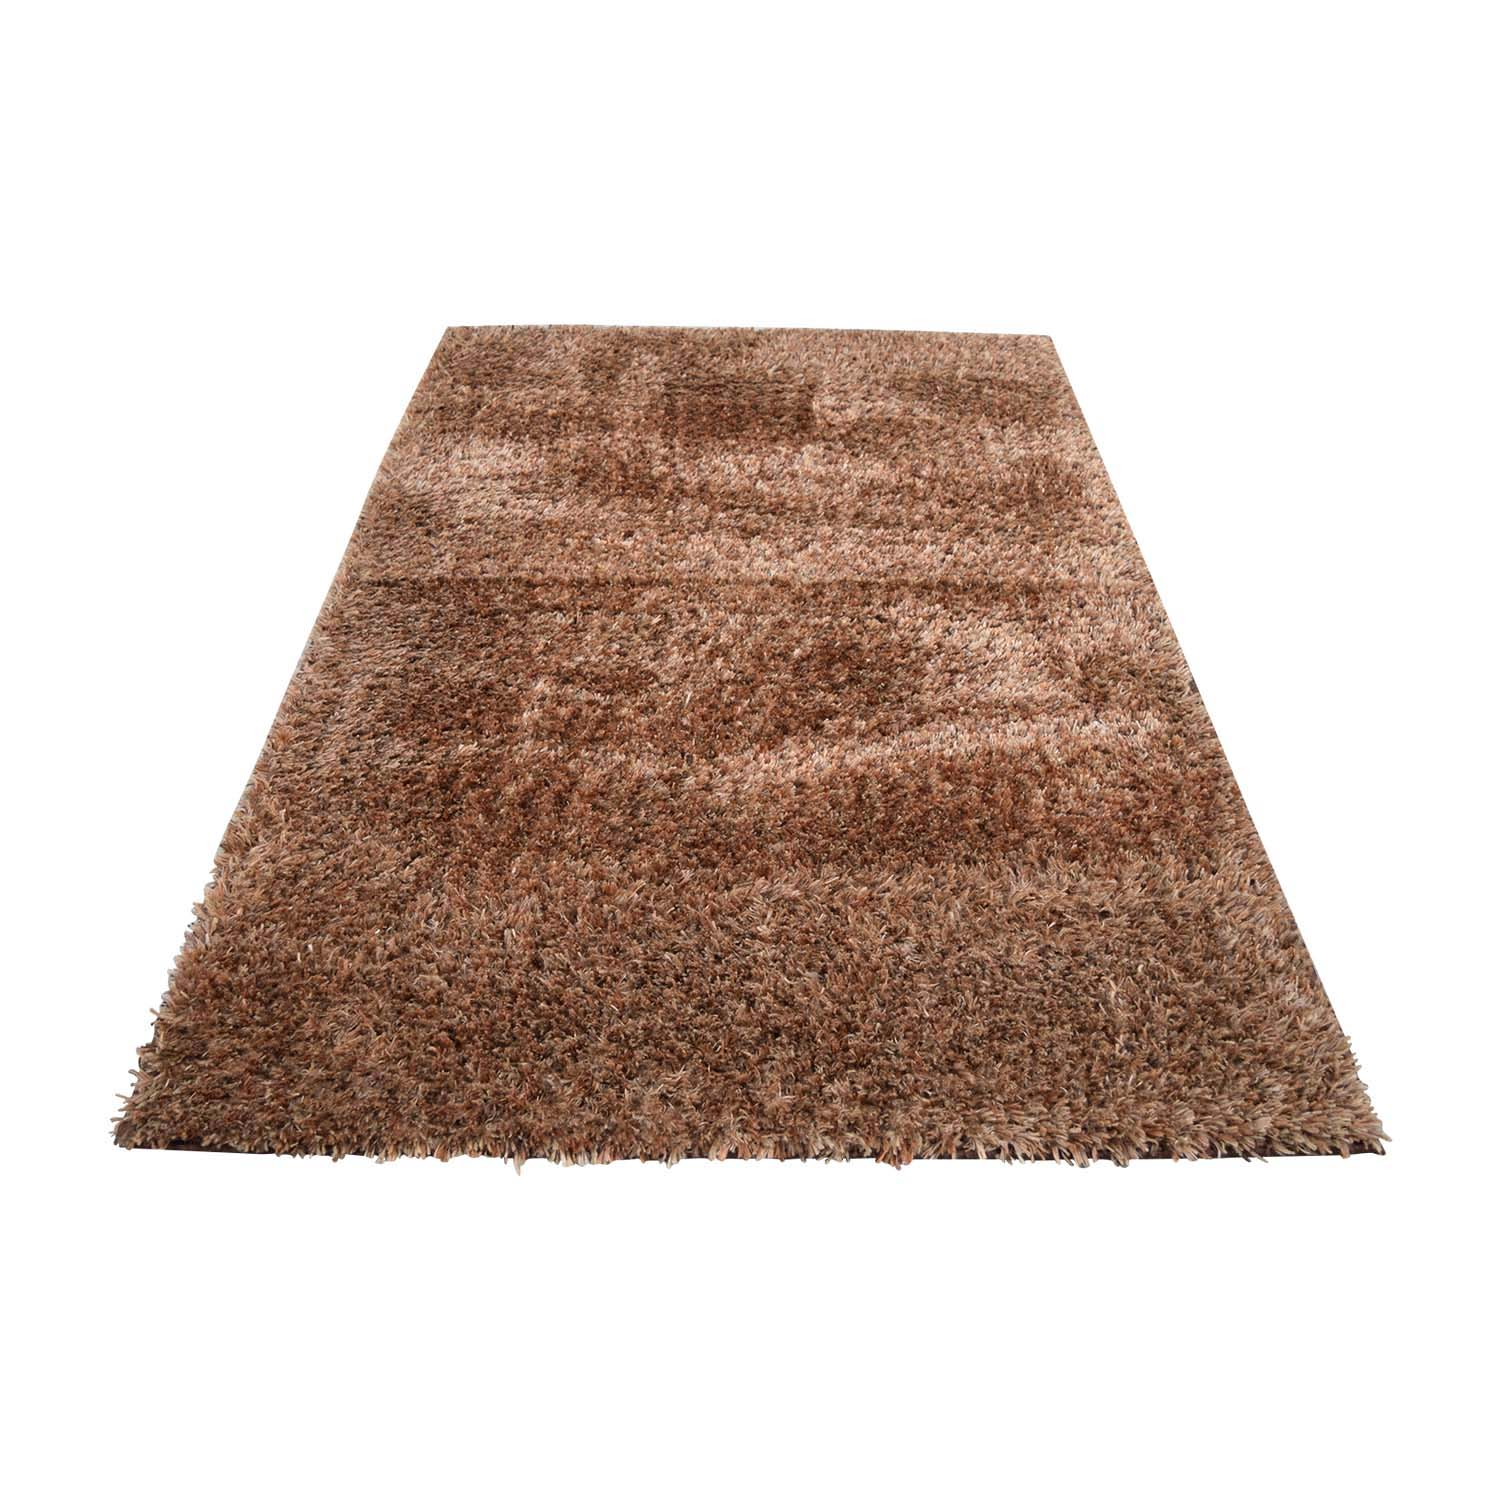 Brown Shag Rug used